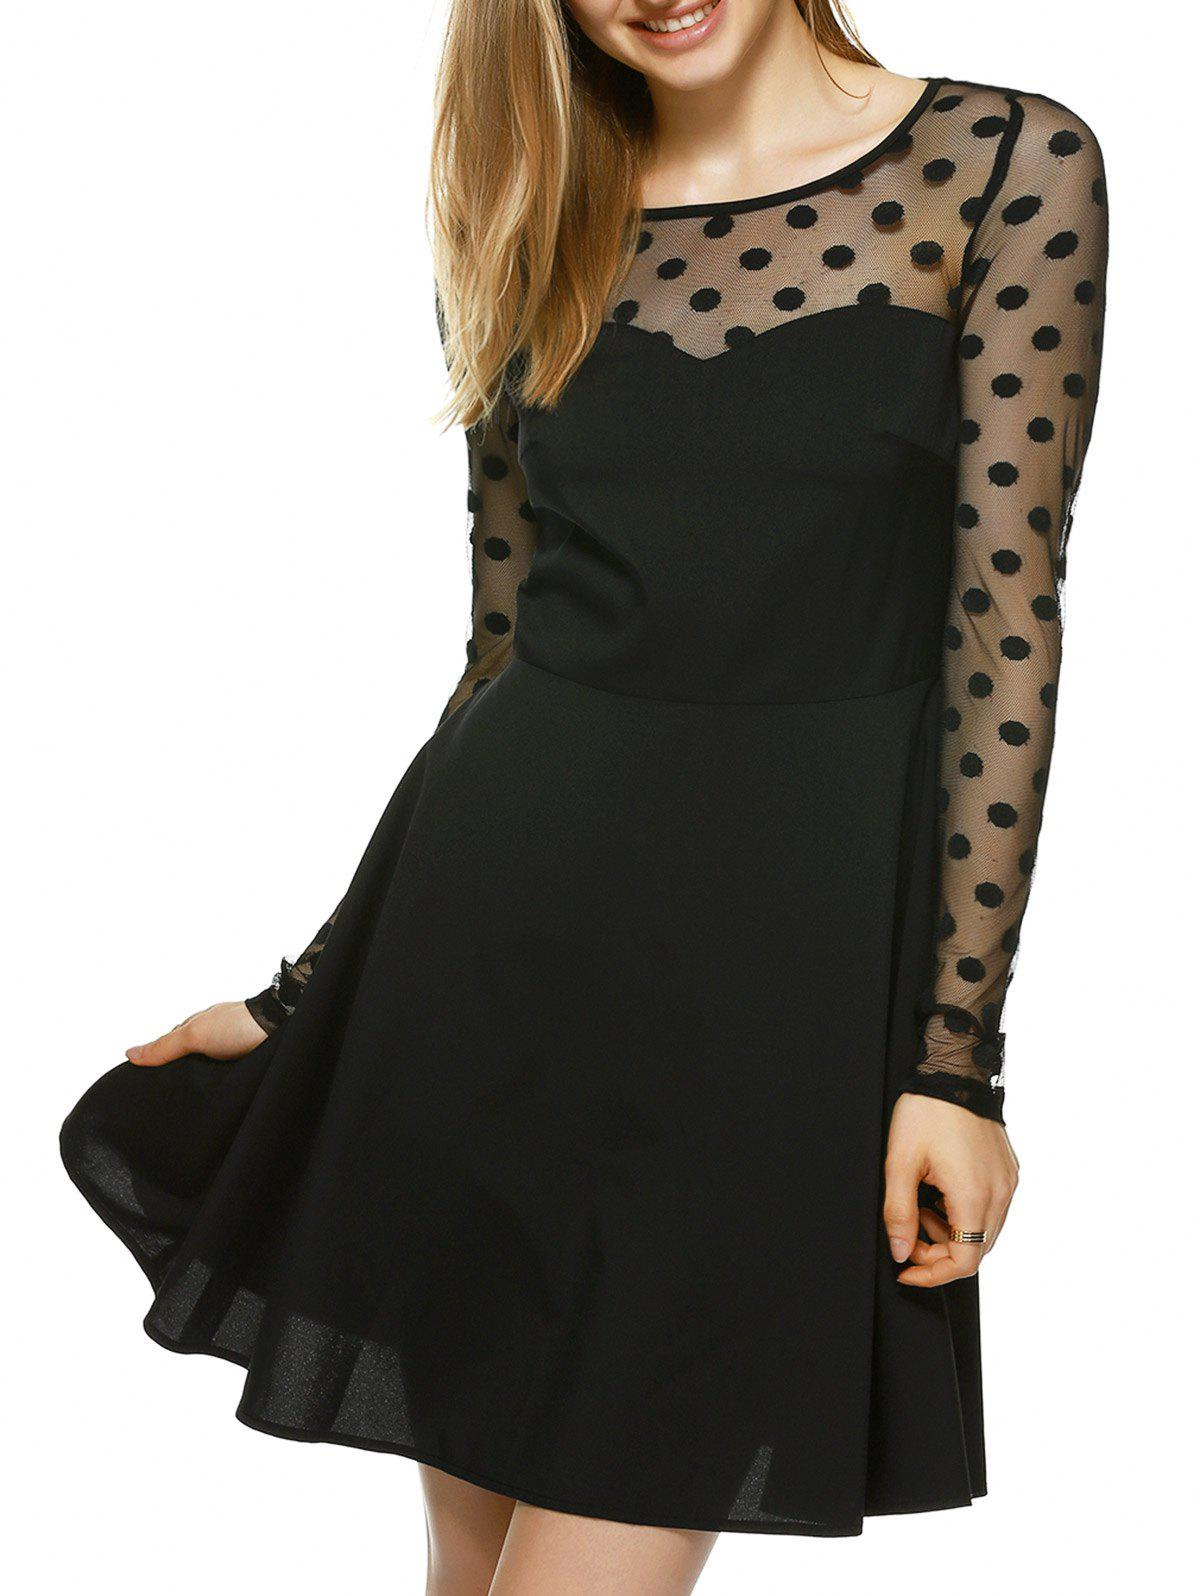 Alluring See-Through Cut Out Dress - BLACK M